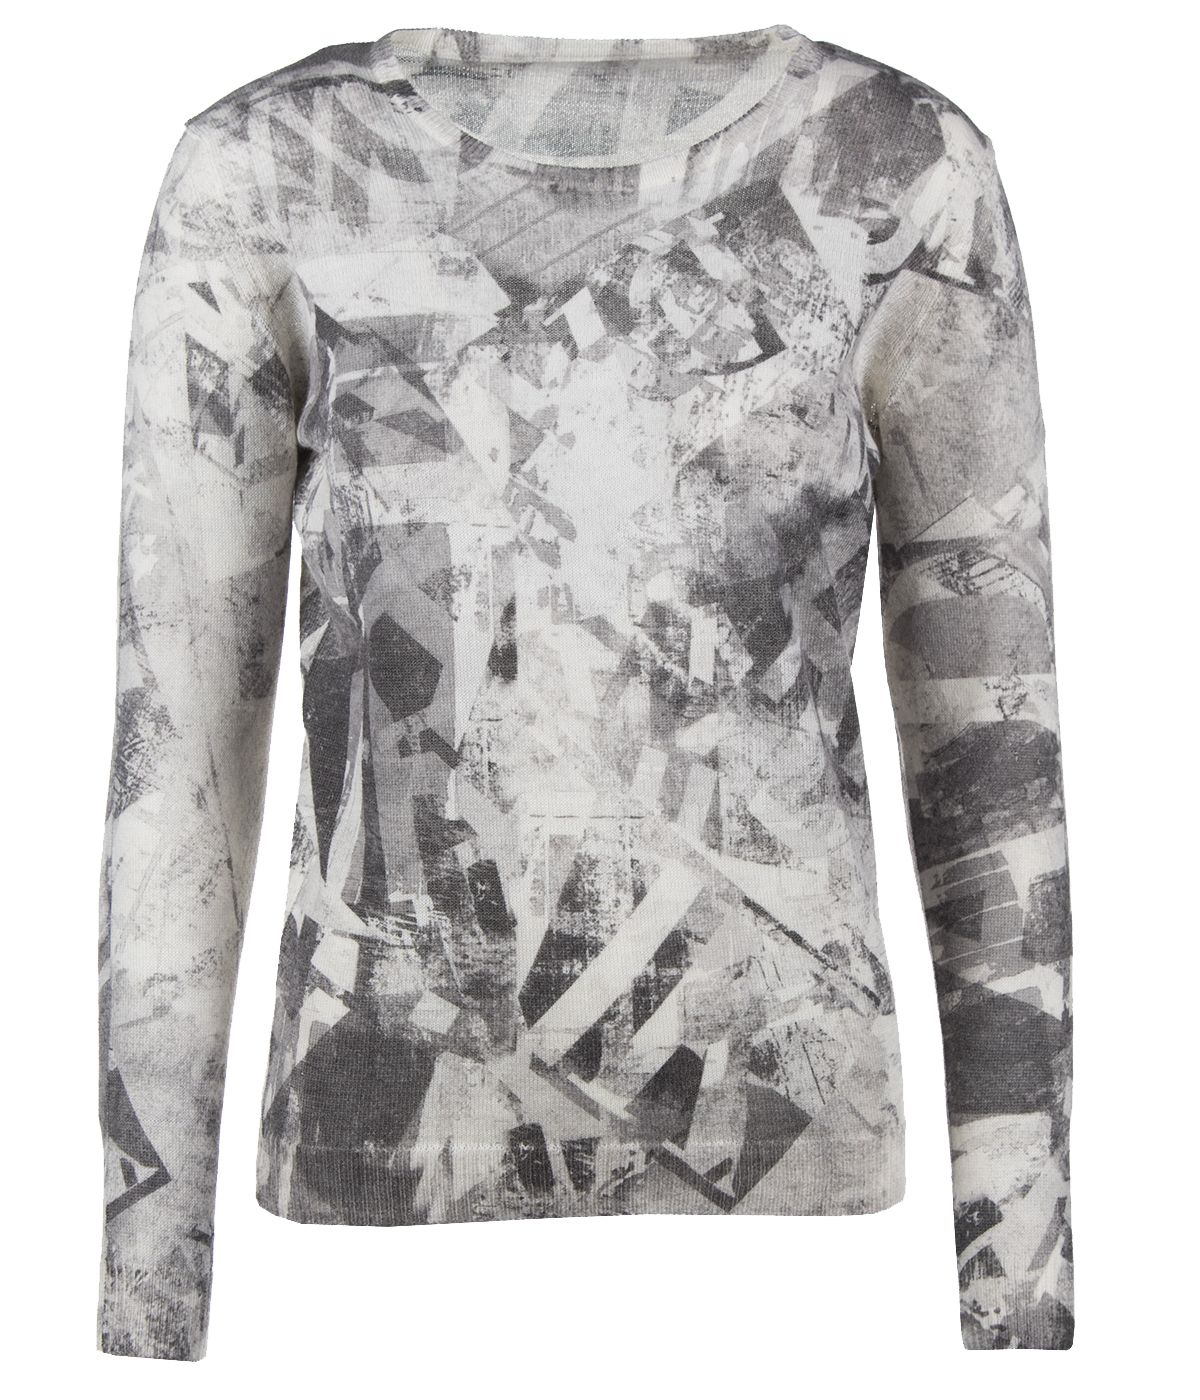 ABSTRACT PRINT SWEATER 0